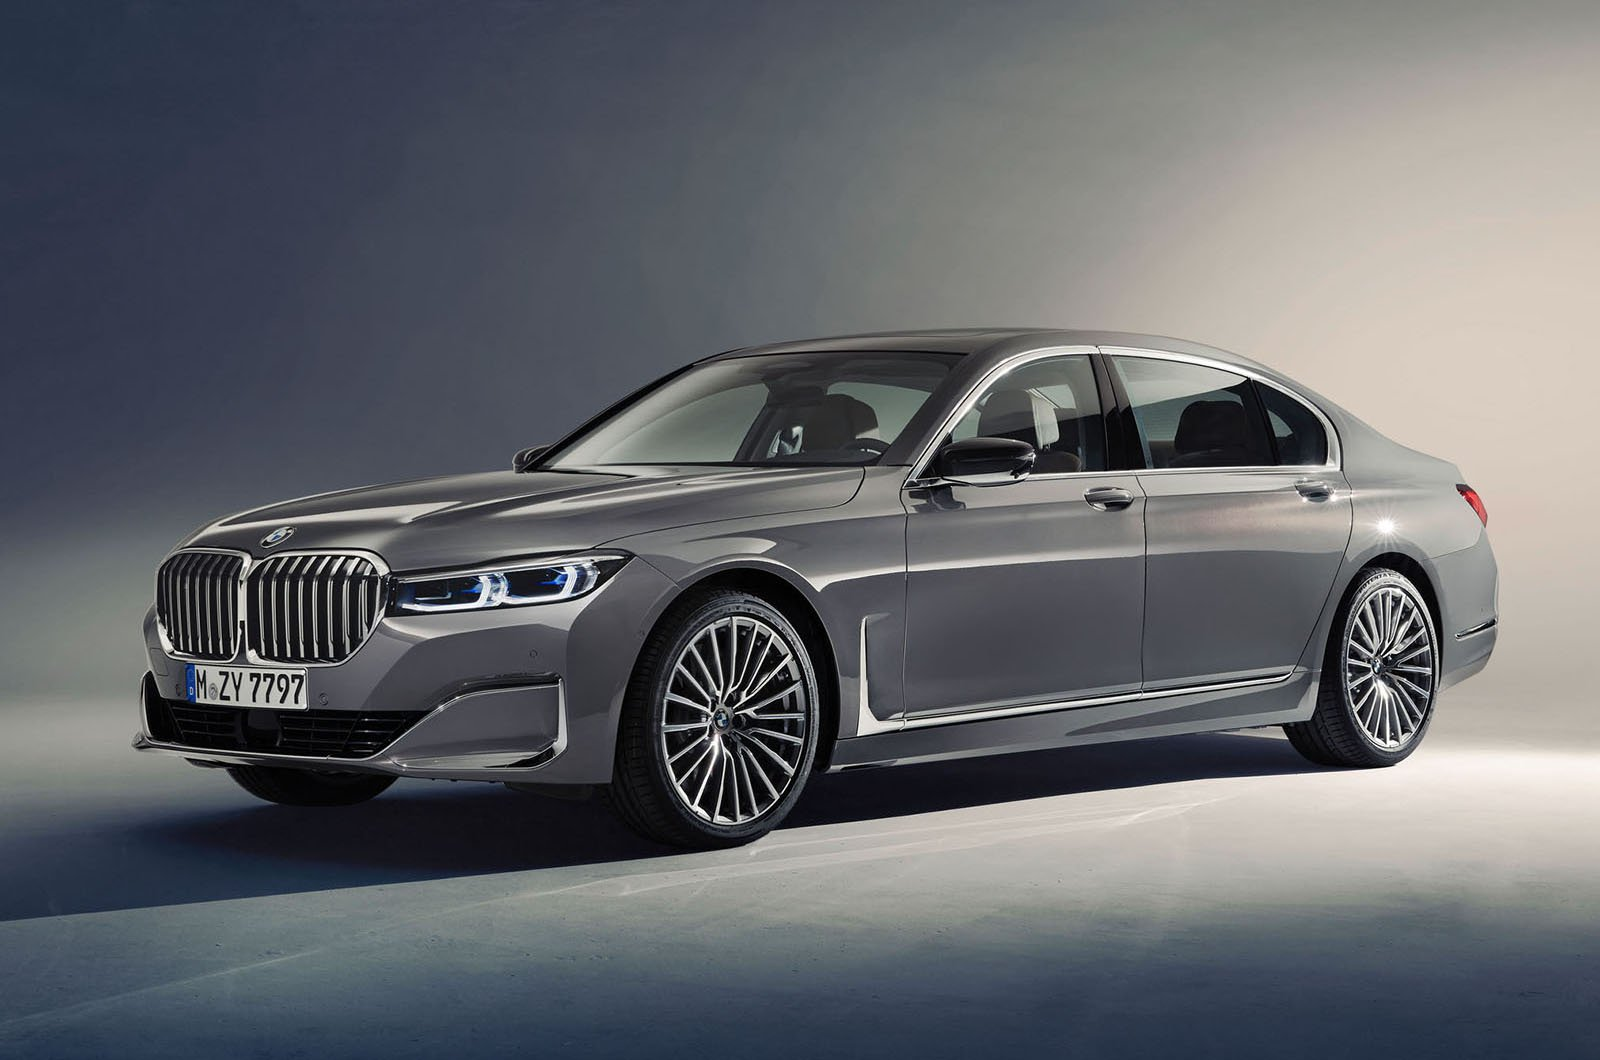 2019 BMW 7 Series revealed: prices, specs and release date ...